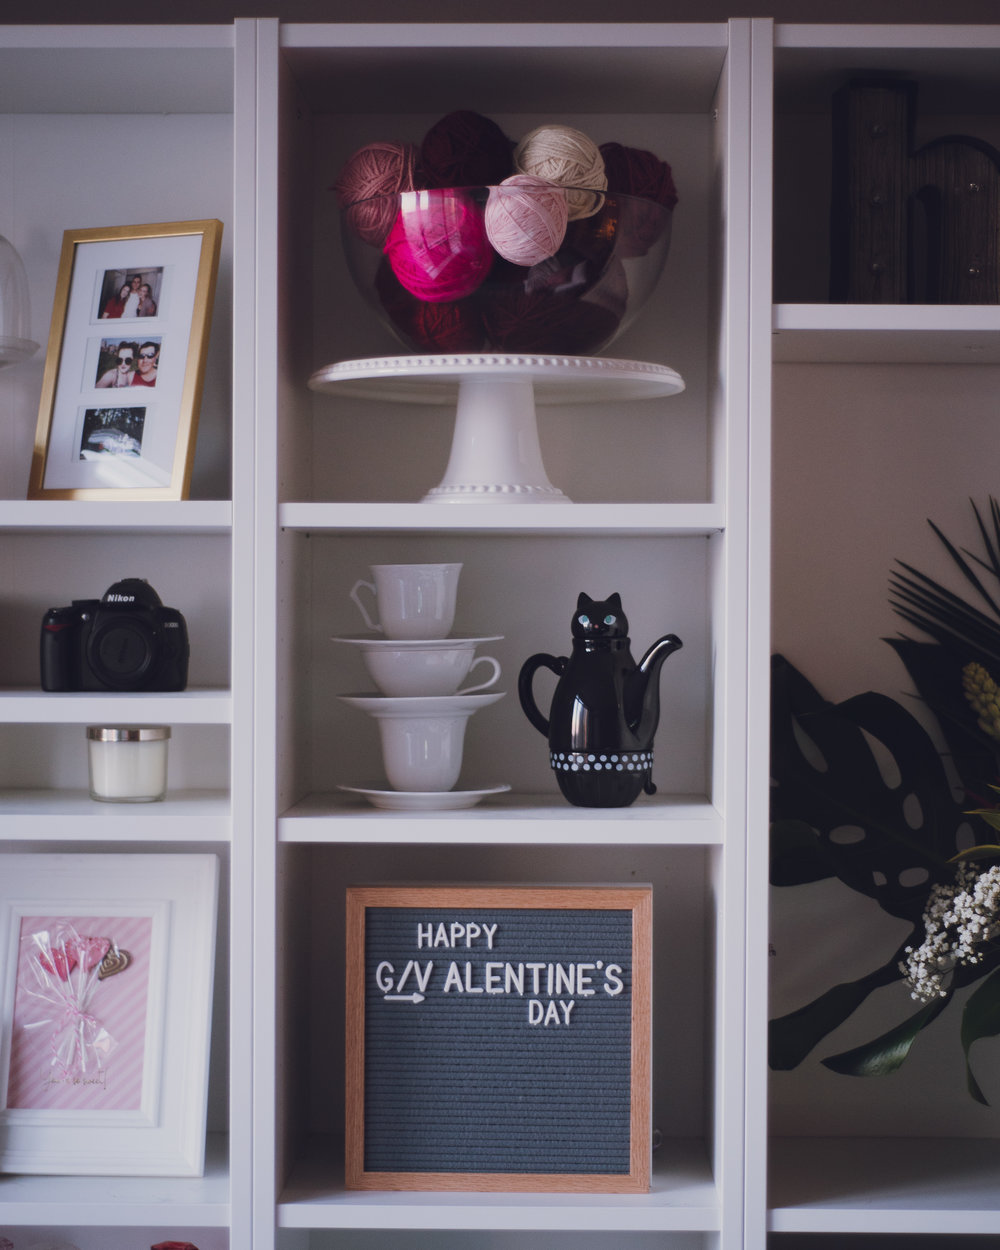 lily-muffins-valentines-living room.jpg